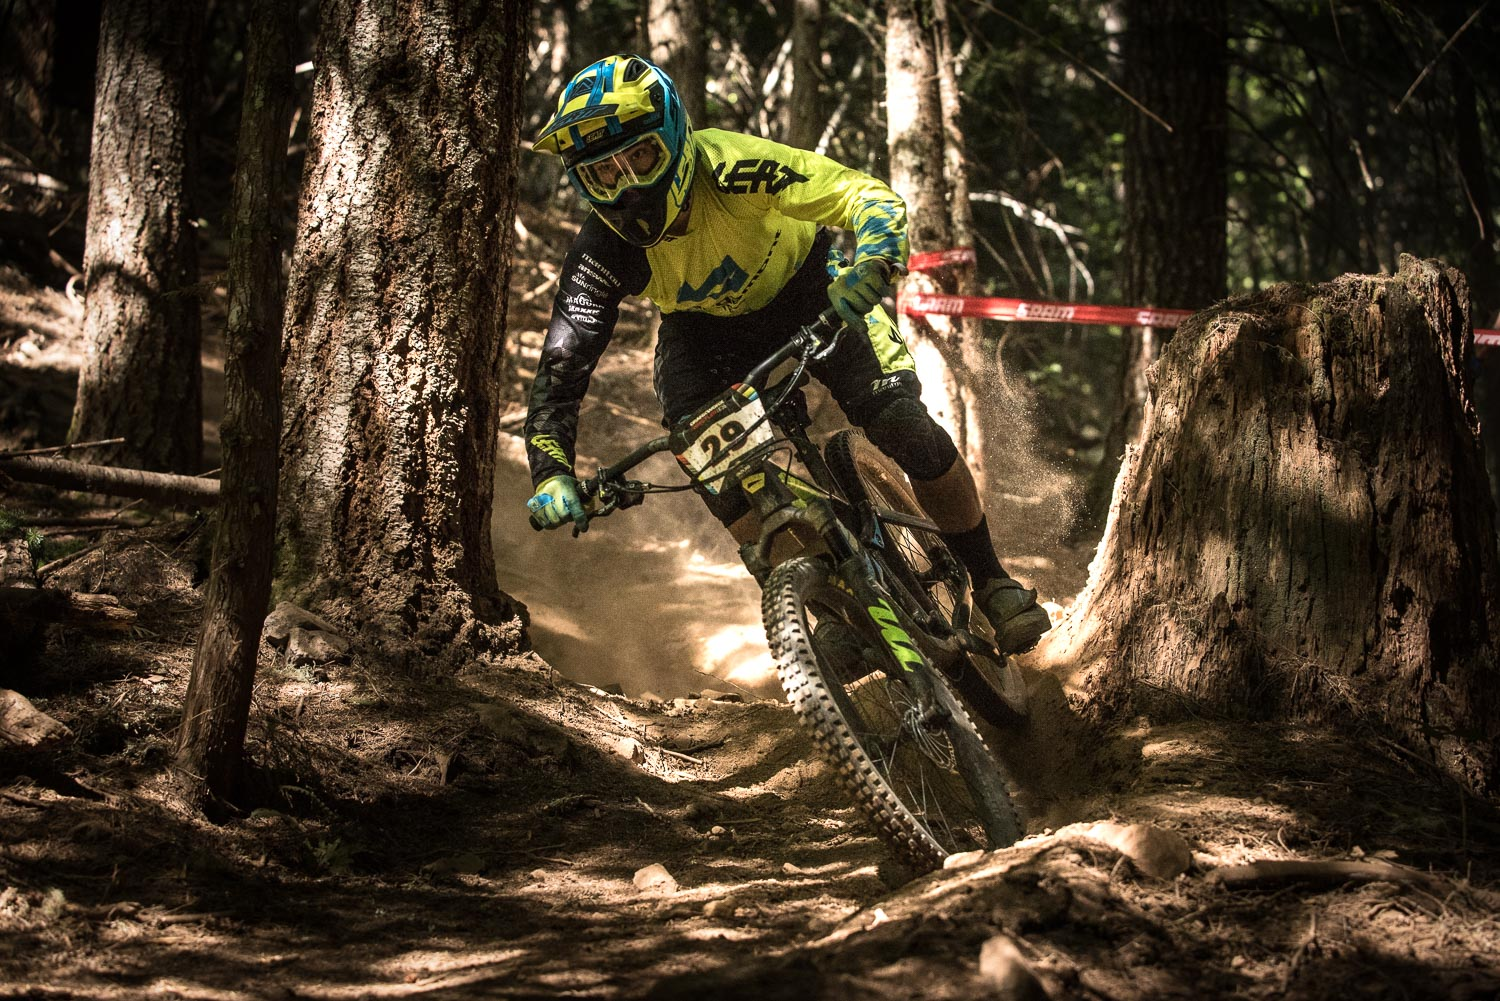 Fastest Kiwi on the day, Joe Nation boots up some roost in the dry chute of stage 3.